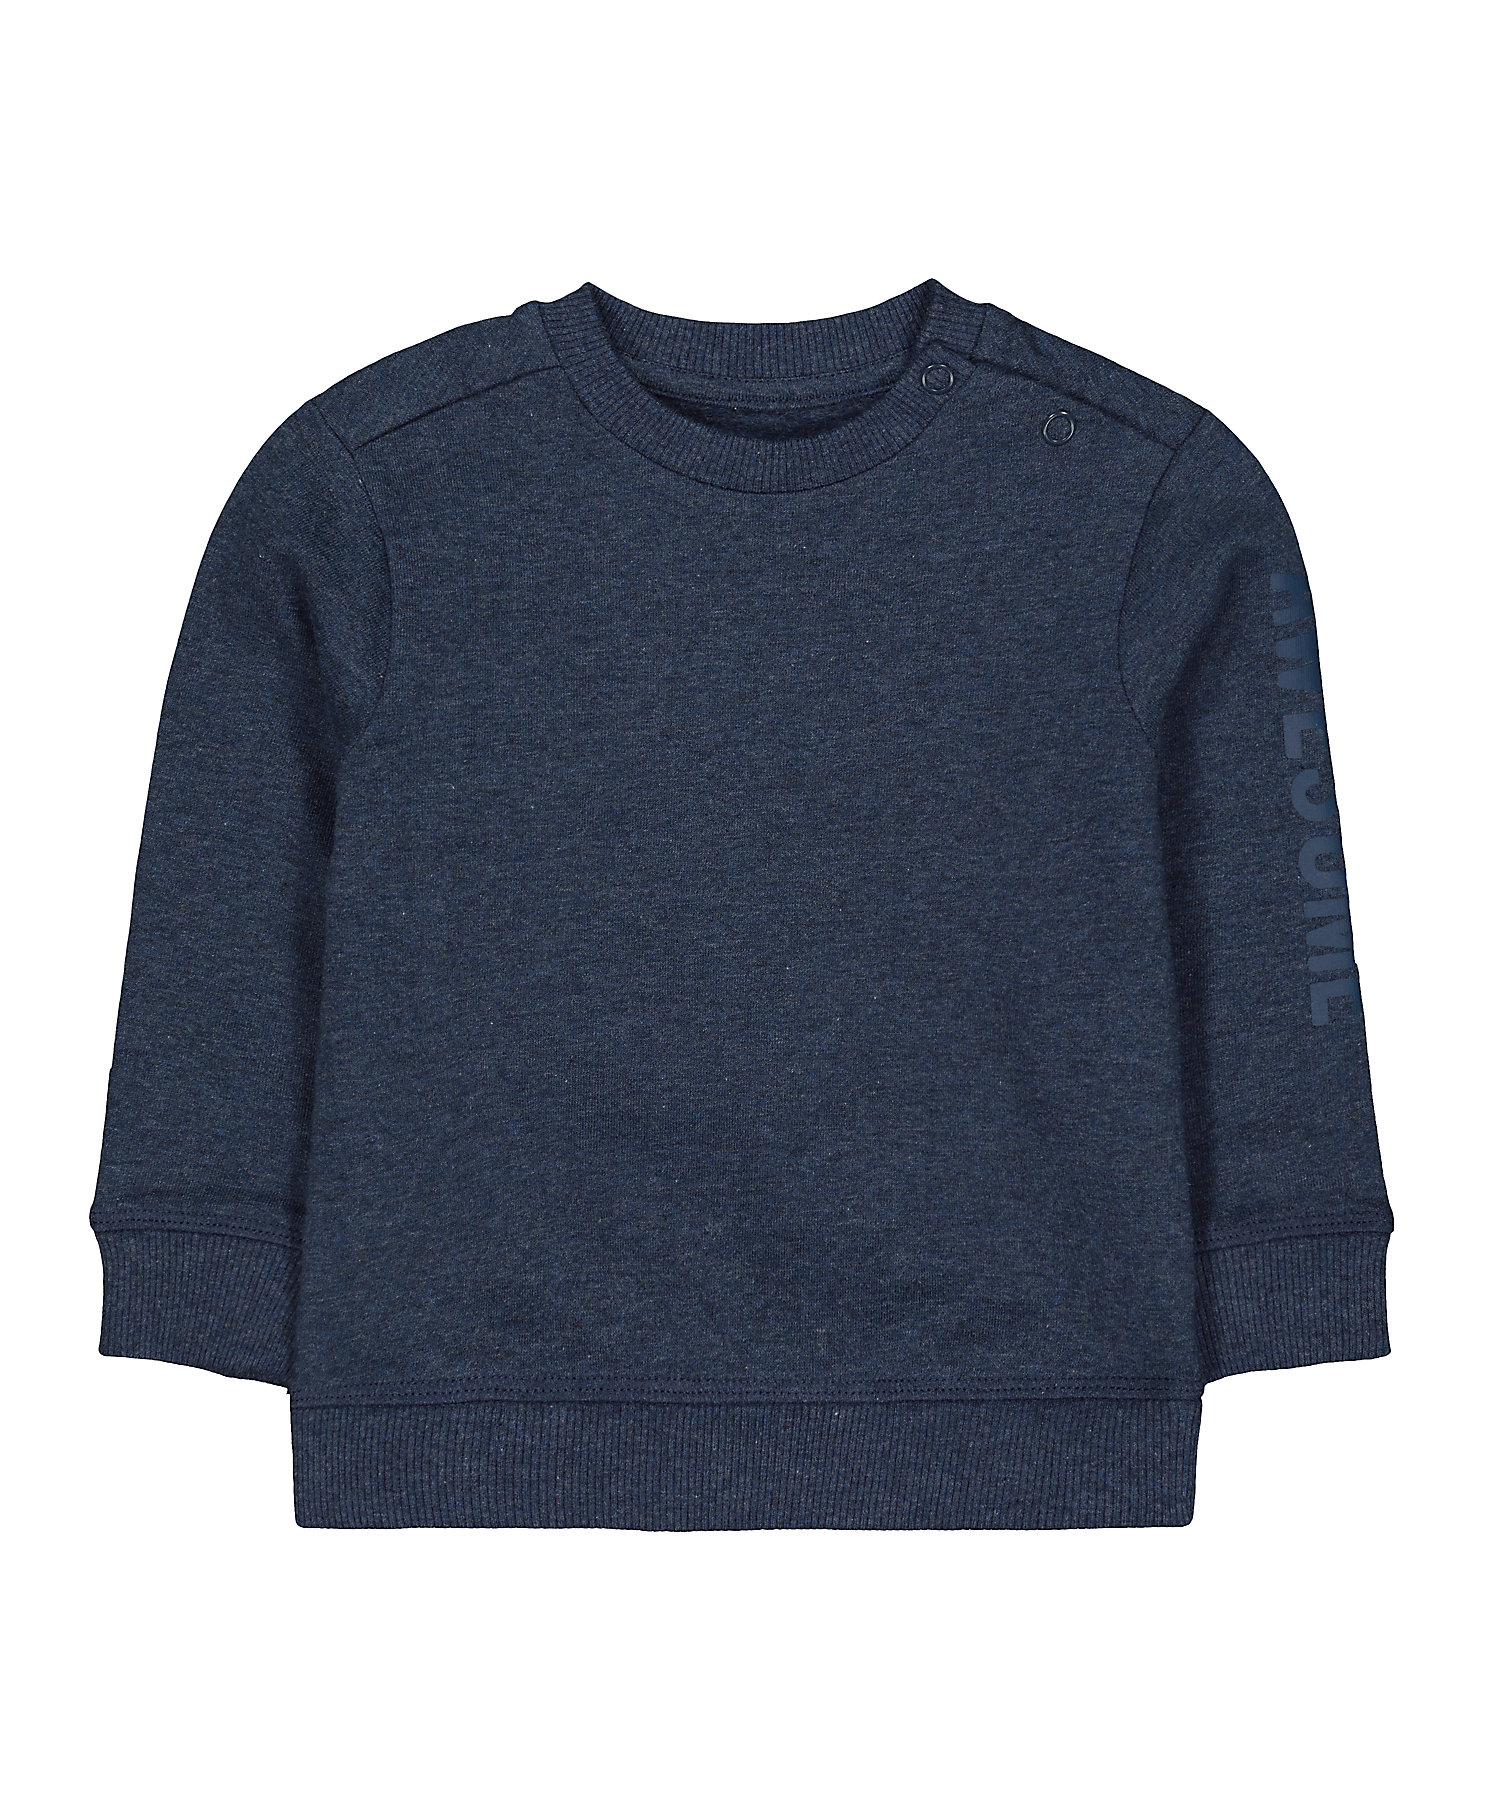 Mothercare | Navy Awesome Sweat Top